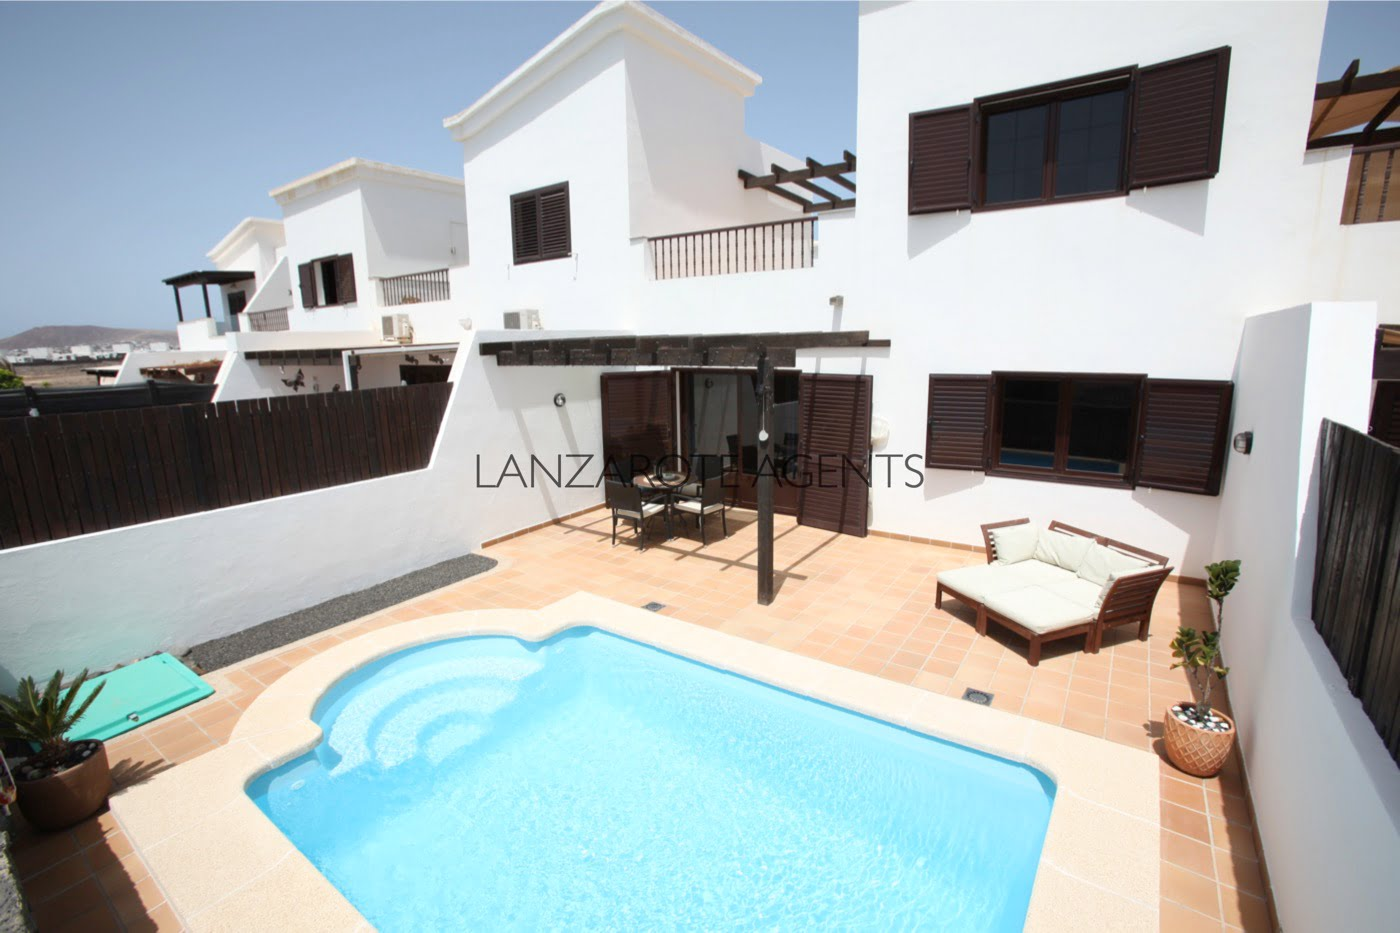 Great Opportunity to Buy a Beautifully Presented Two Bedroom Villa With Stunning Views and Private Pool